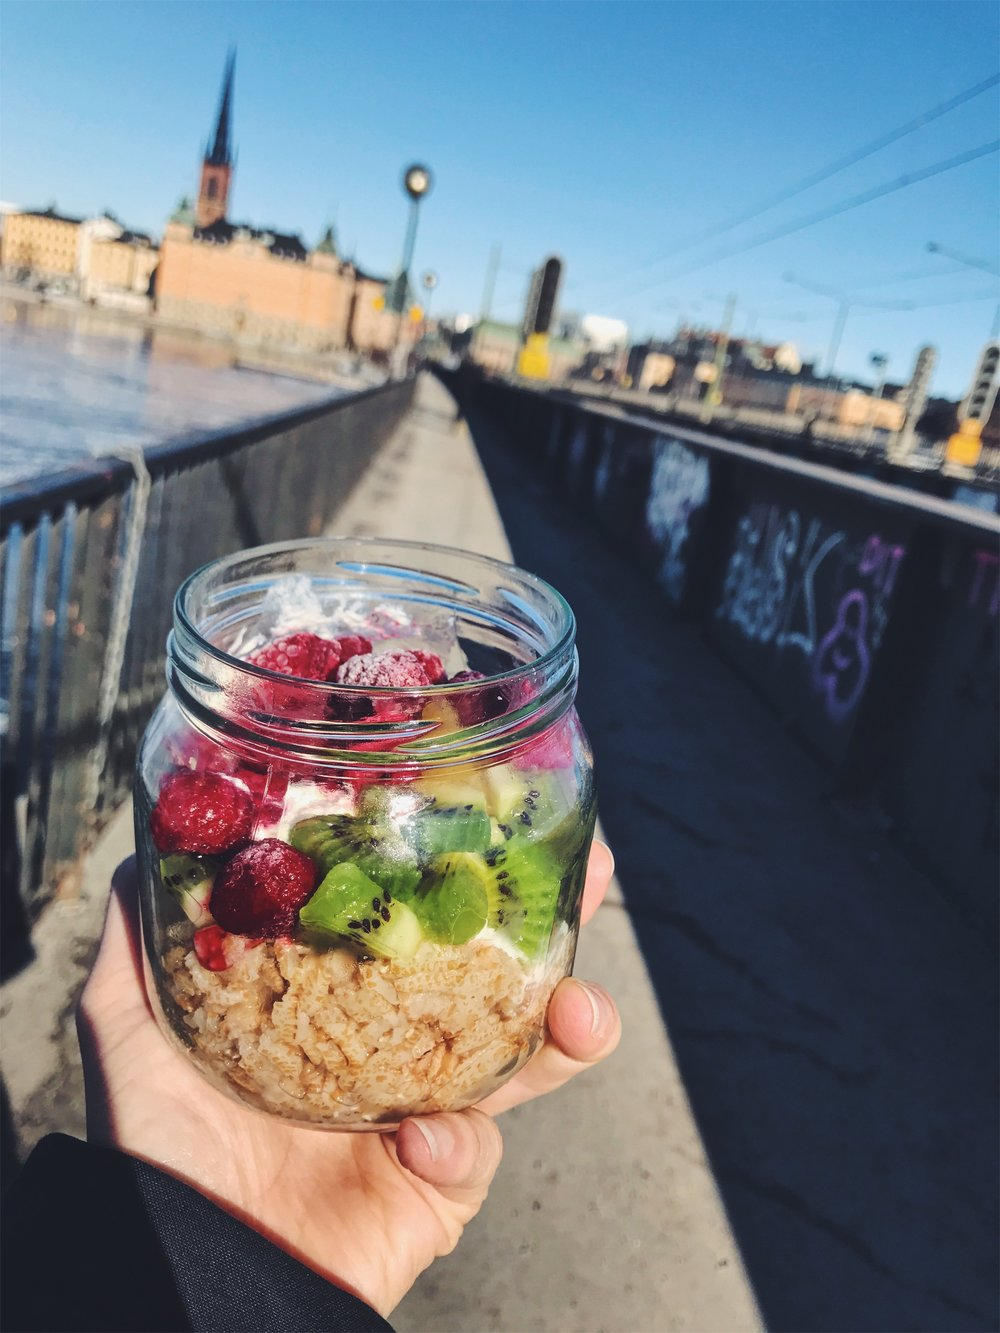 On-the-go oatmeal, fruit & yogurt jar